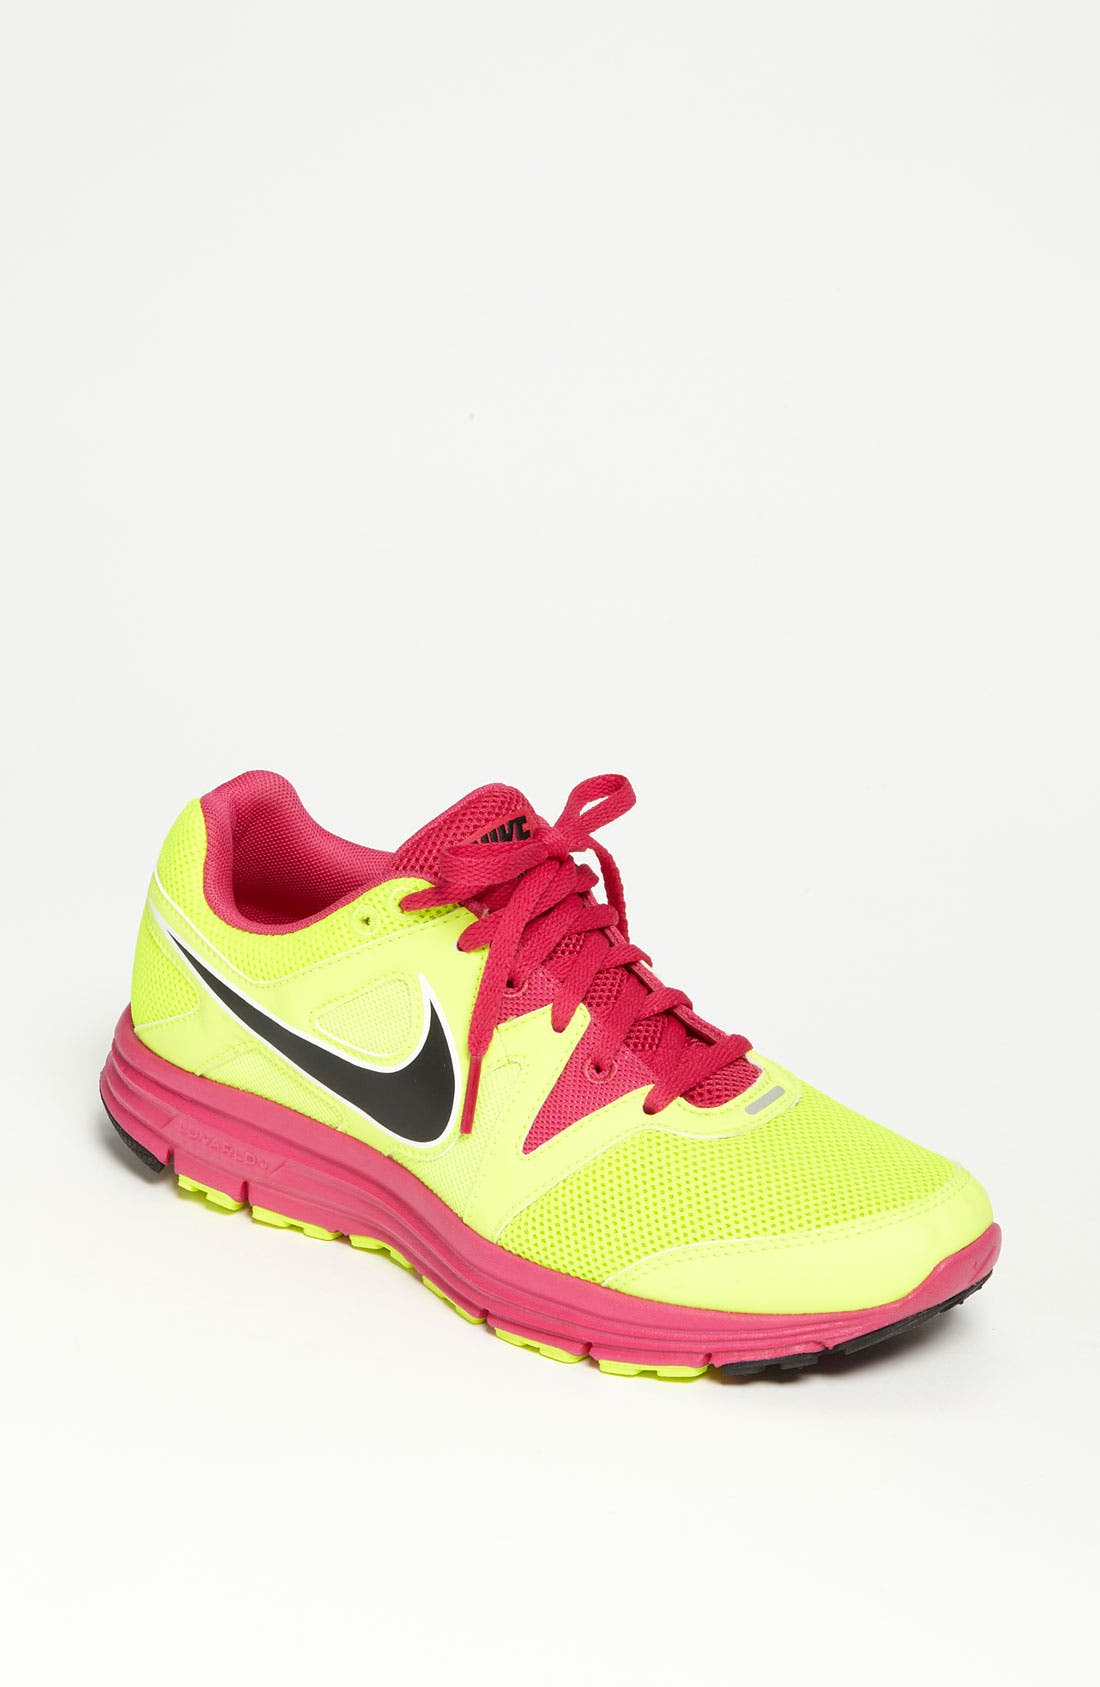 Alternate Image 1 Selected - Nike 'Lunarfly 3' Running Shoe (Women)